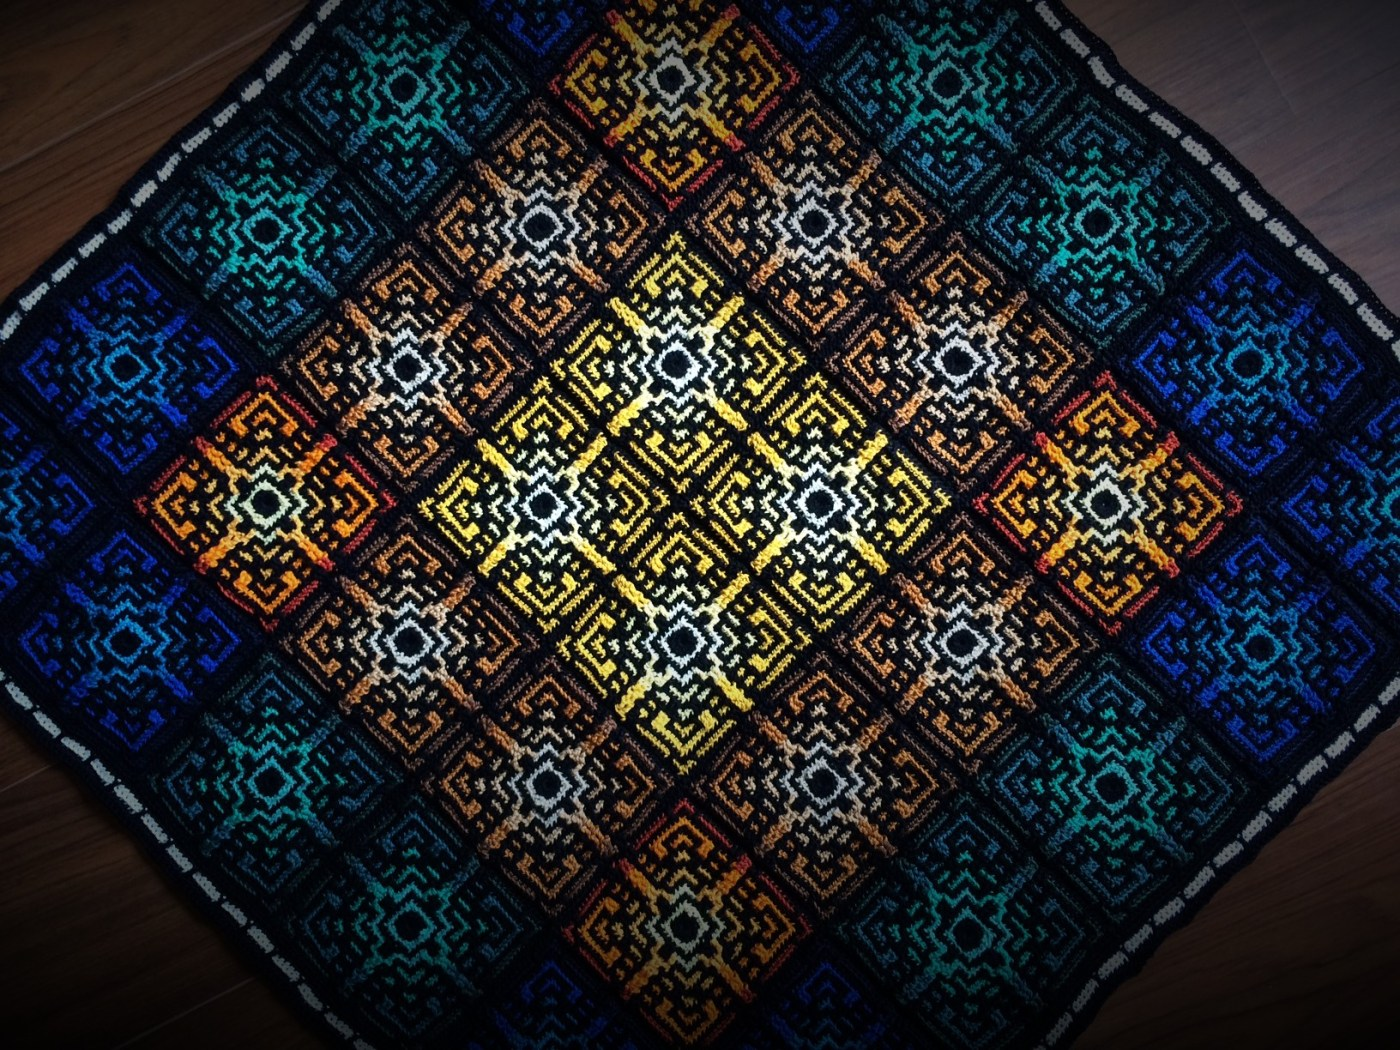 the medina mosaic tiles pattern is out